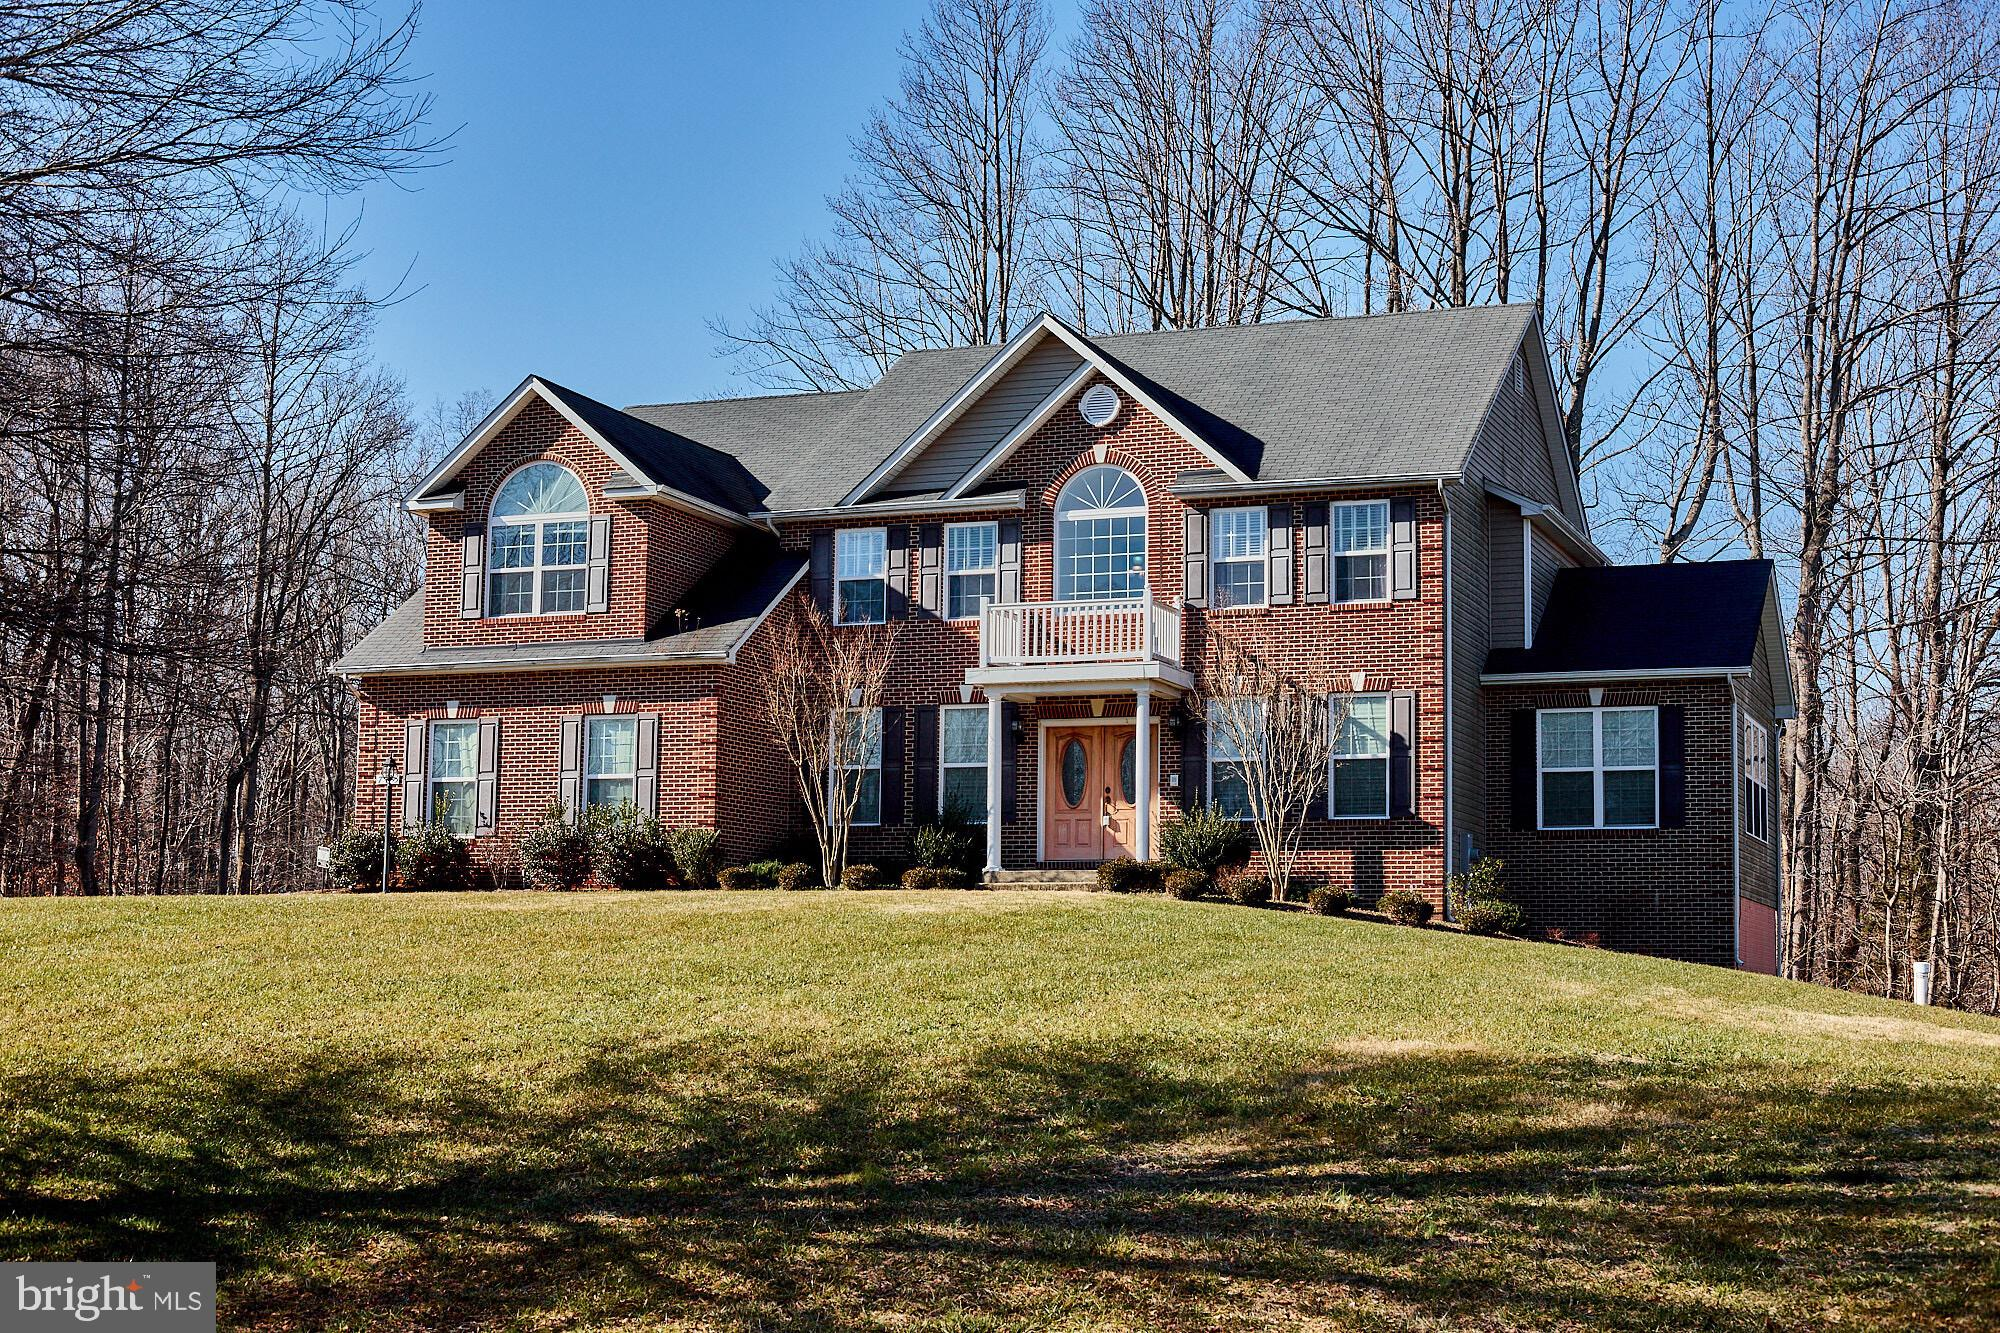 This immaculate 3-level Colonial is nestled on a quiet cul-de-sac, sitting high on 1 acre of land, i